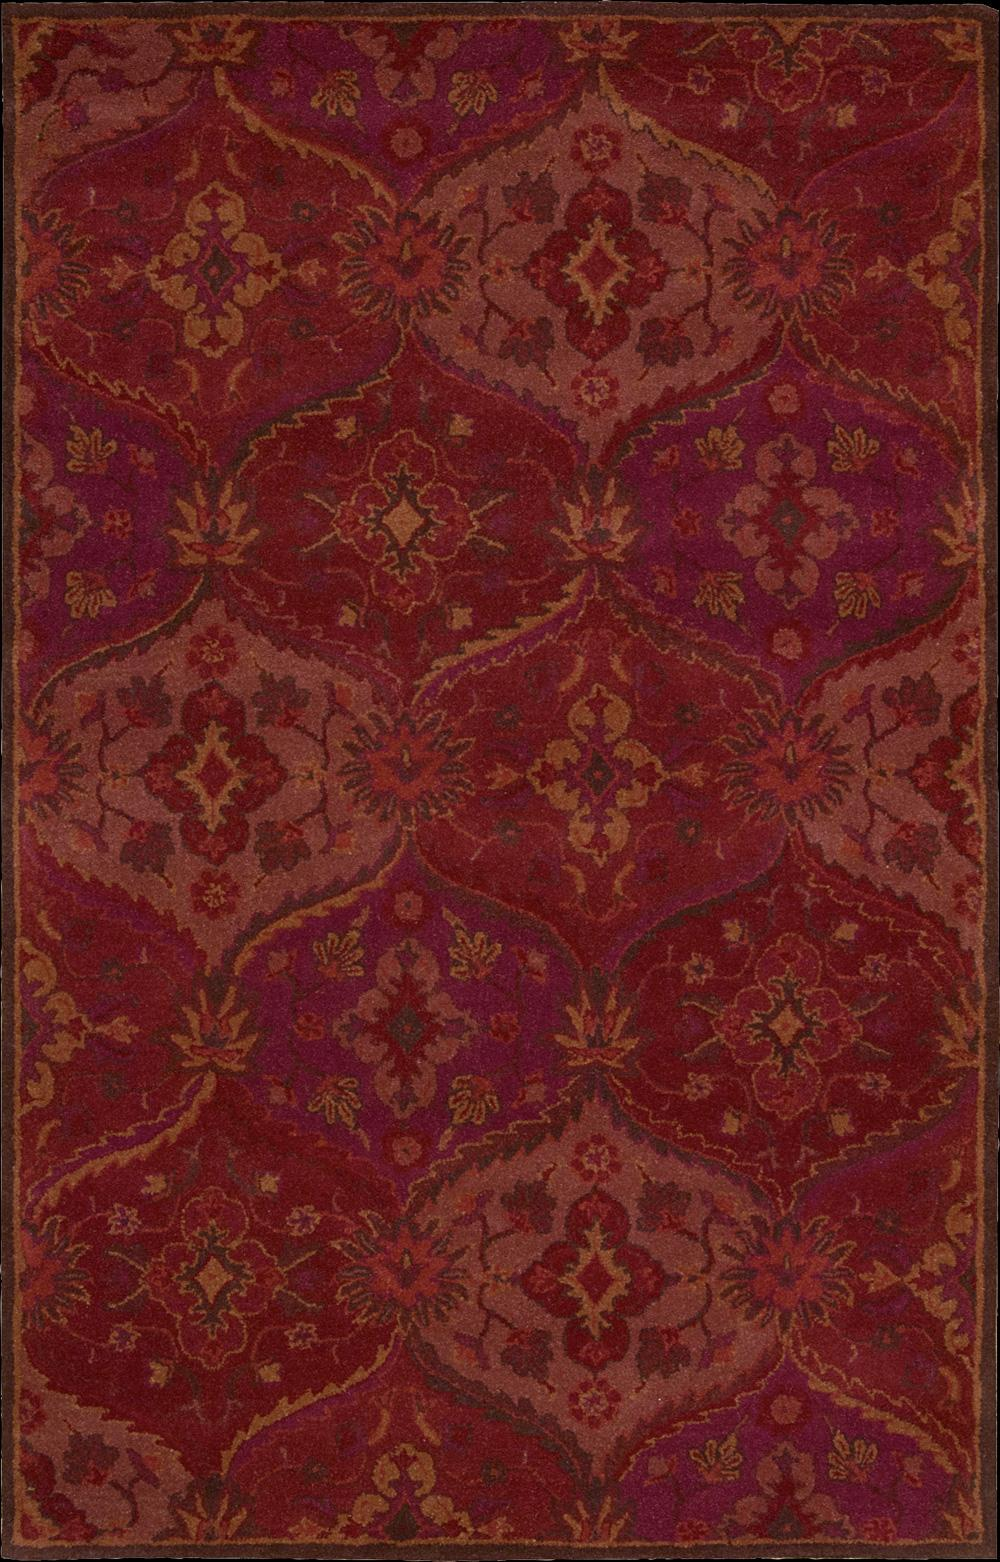 """Nourison India House Area Rug 3'6"""" x 5'6"""" - Item Number: 16201"""